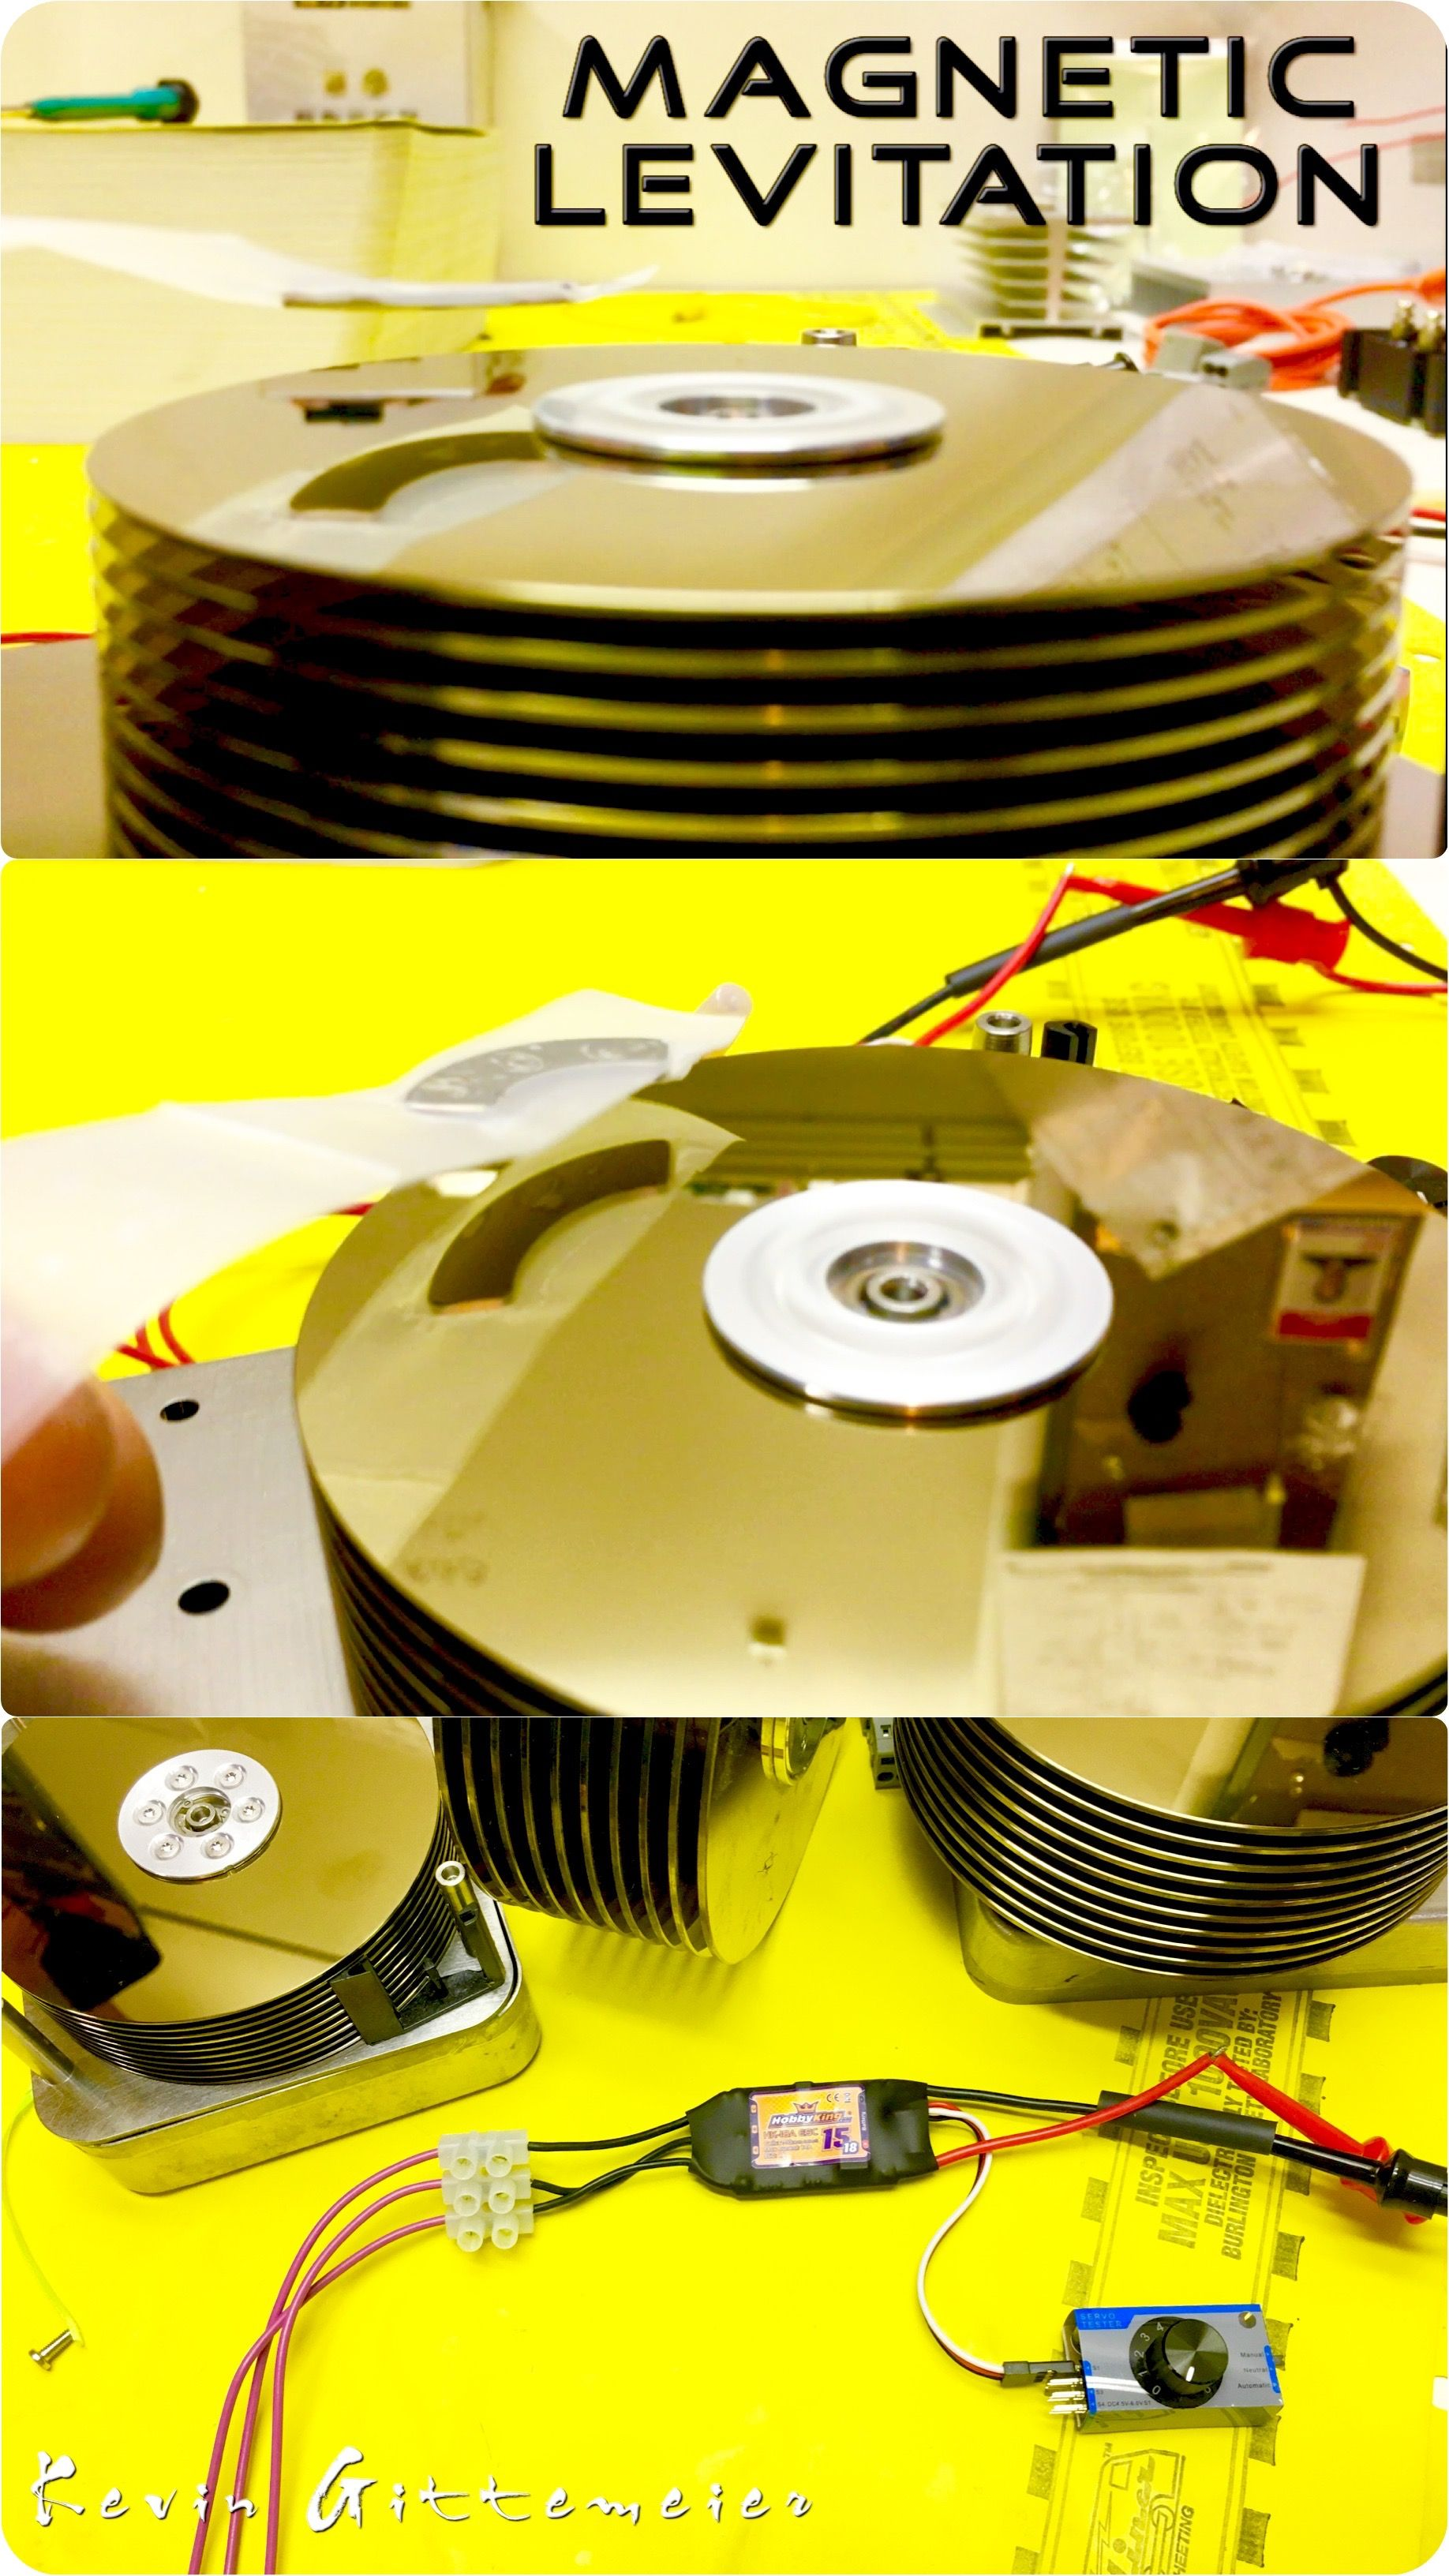 Pin By Samwise On Things To Do Magnets Magnetic Levitation Turnigy Receiver Controlled Off Switch Gt R C Electronics Fun With Hard Drives